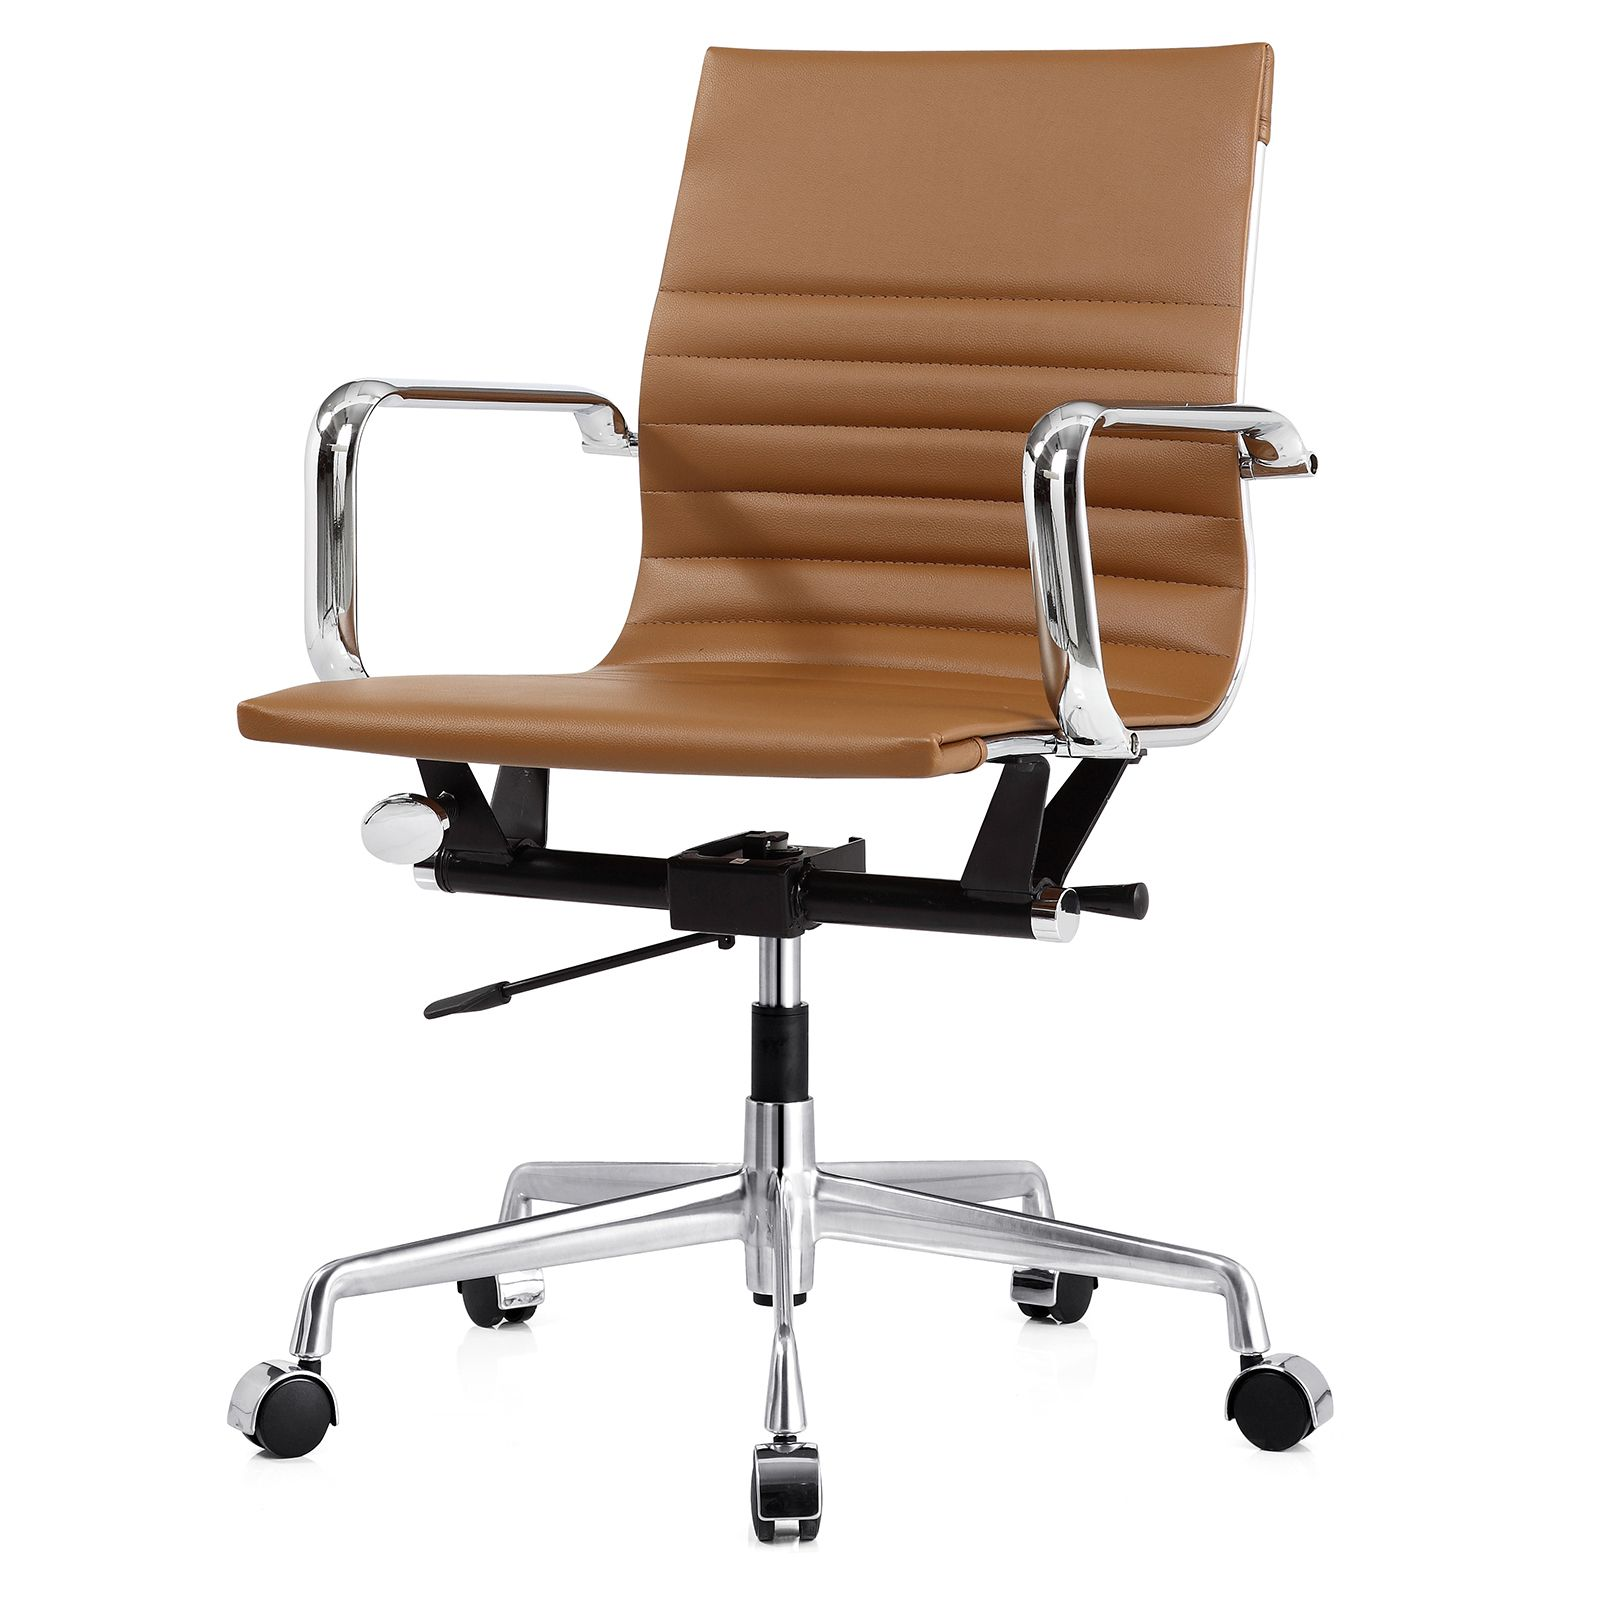 mid century modern office chairs. Overstock.com: Online Shopping - Bedding, Furniture, Electronics, Jewelry, Clothing \u0026 More Mid Century Modern Office Chairs